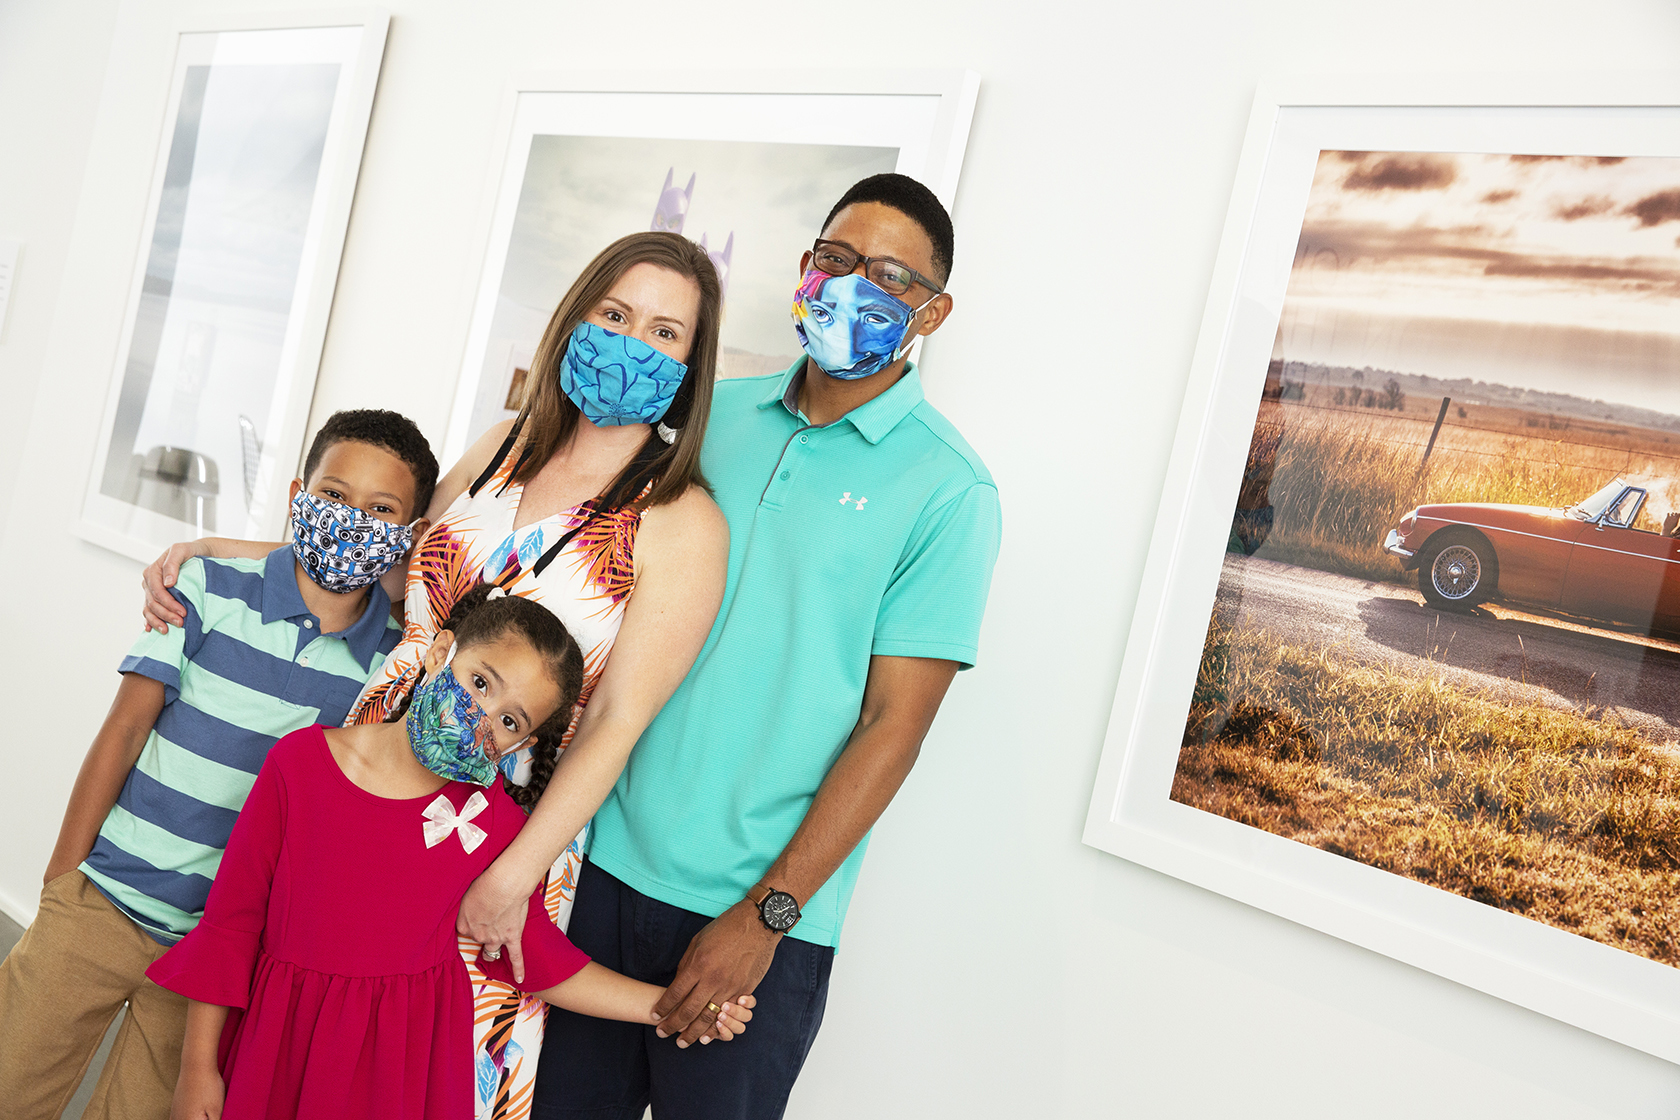 A masked family poses in a gallery of photographs